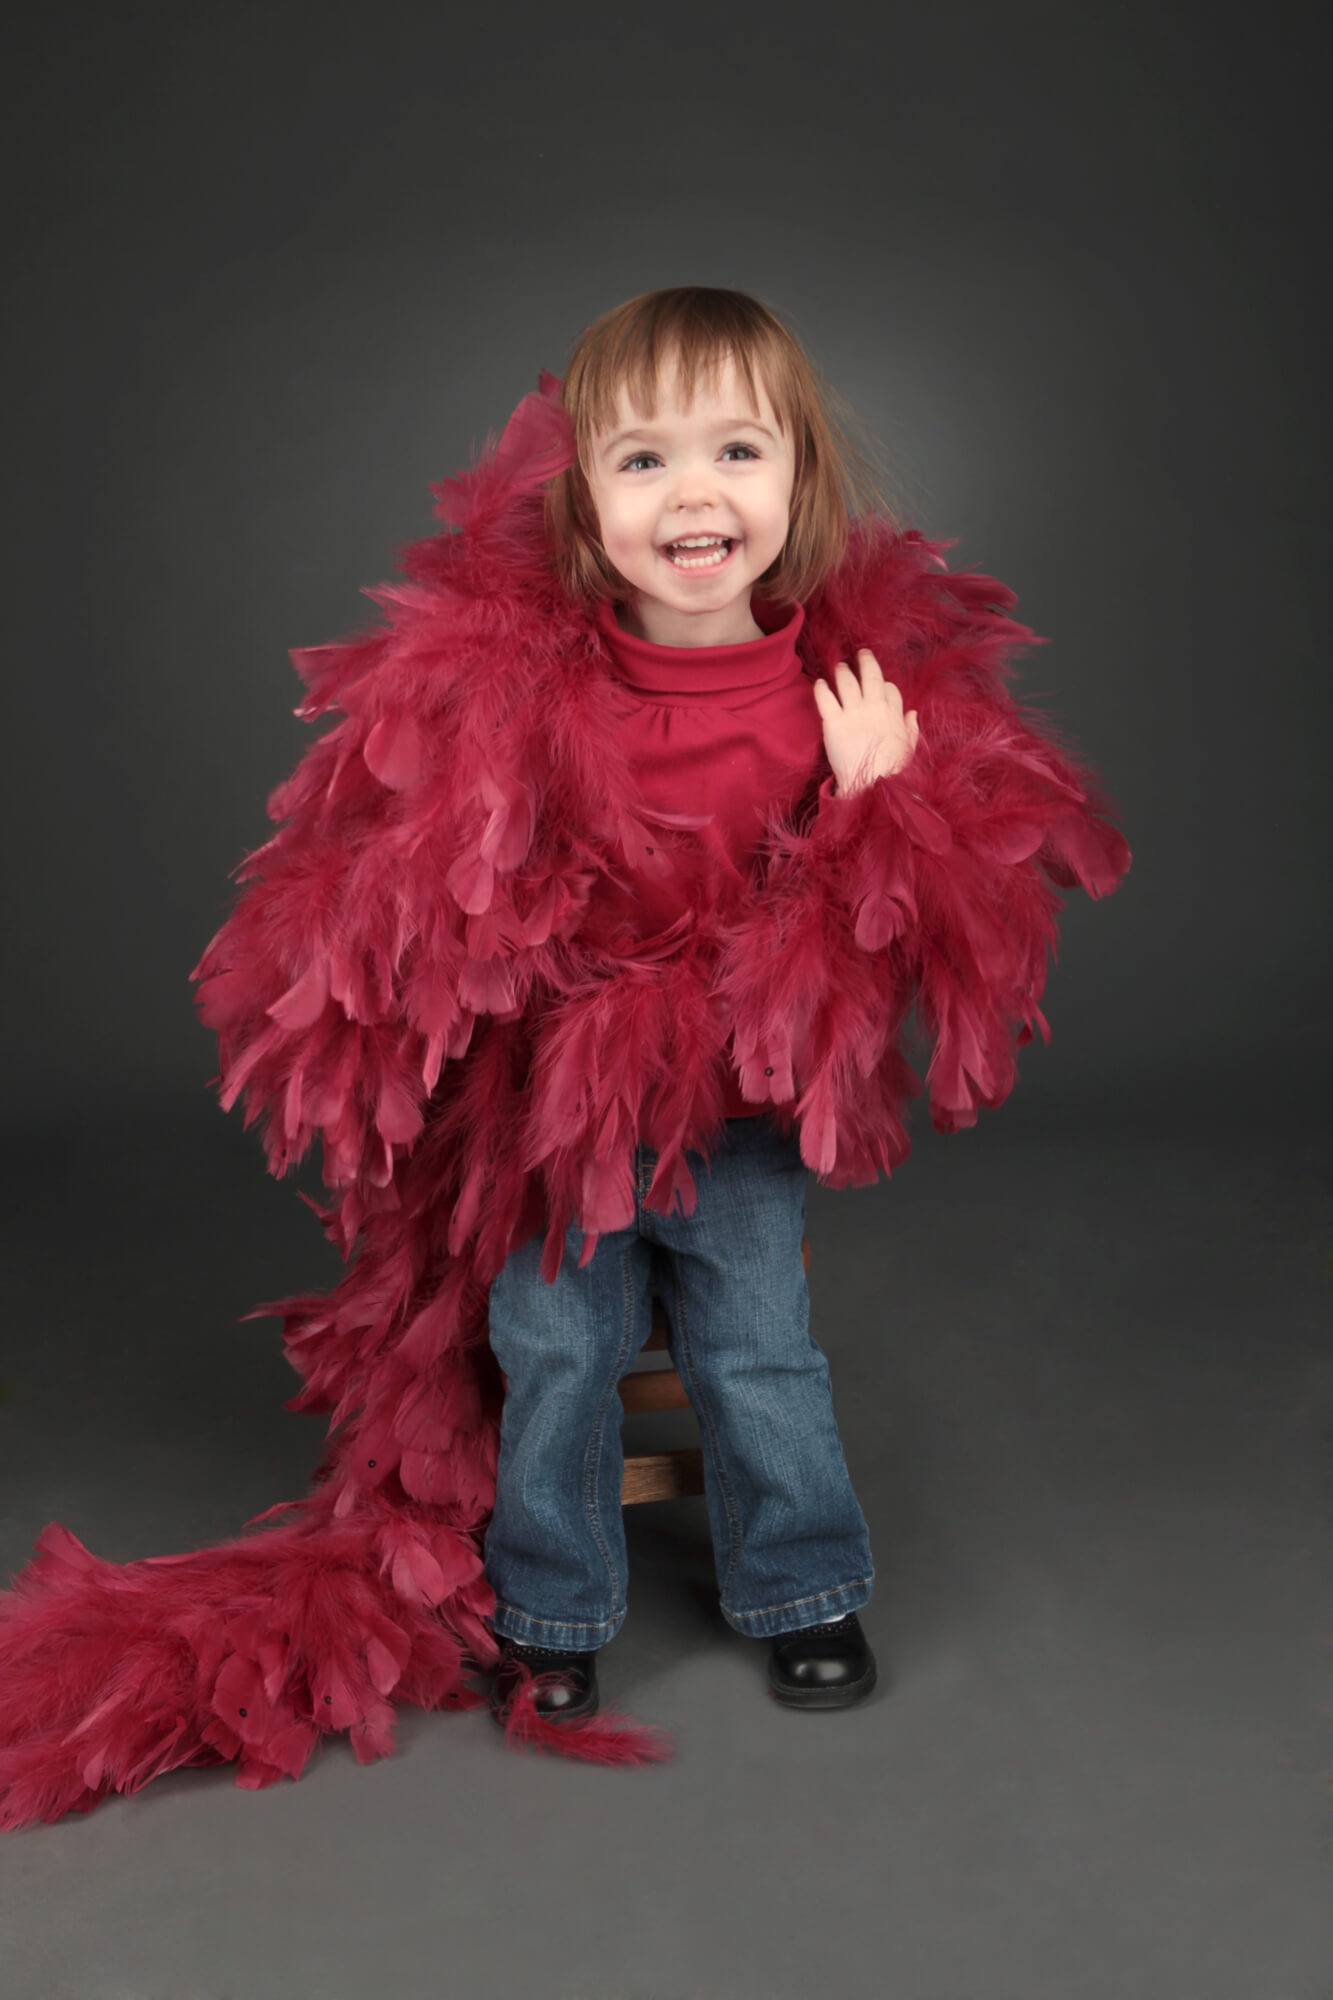 Girl poses with pink boa for child's portrait